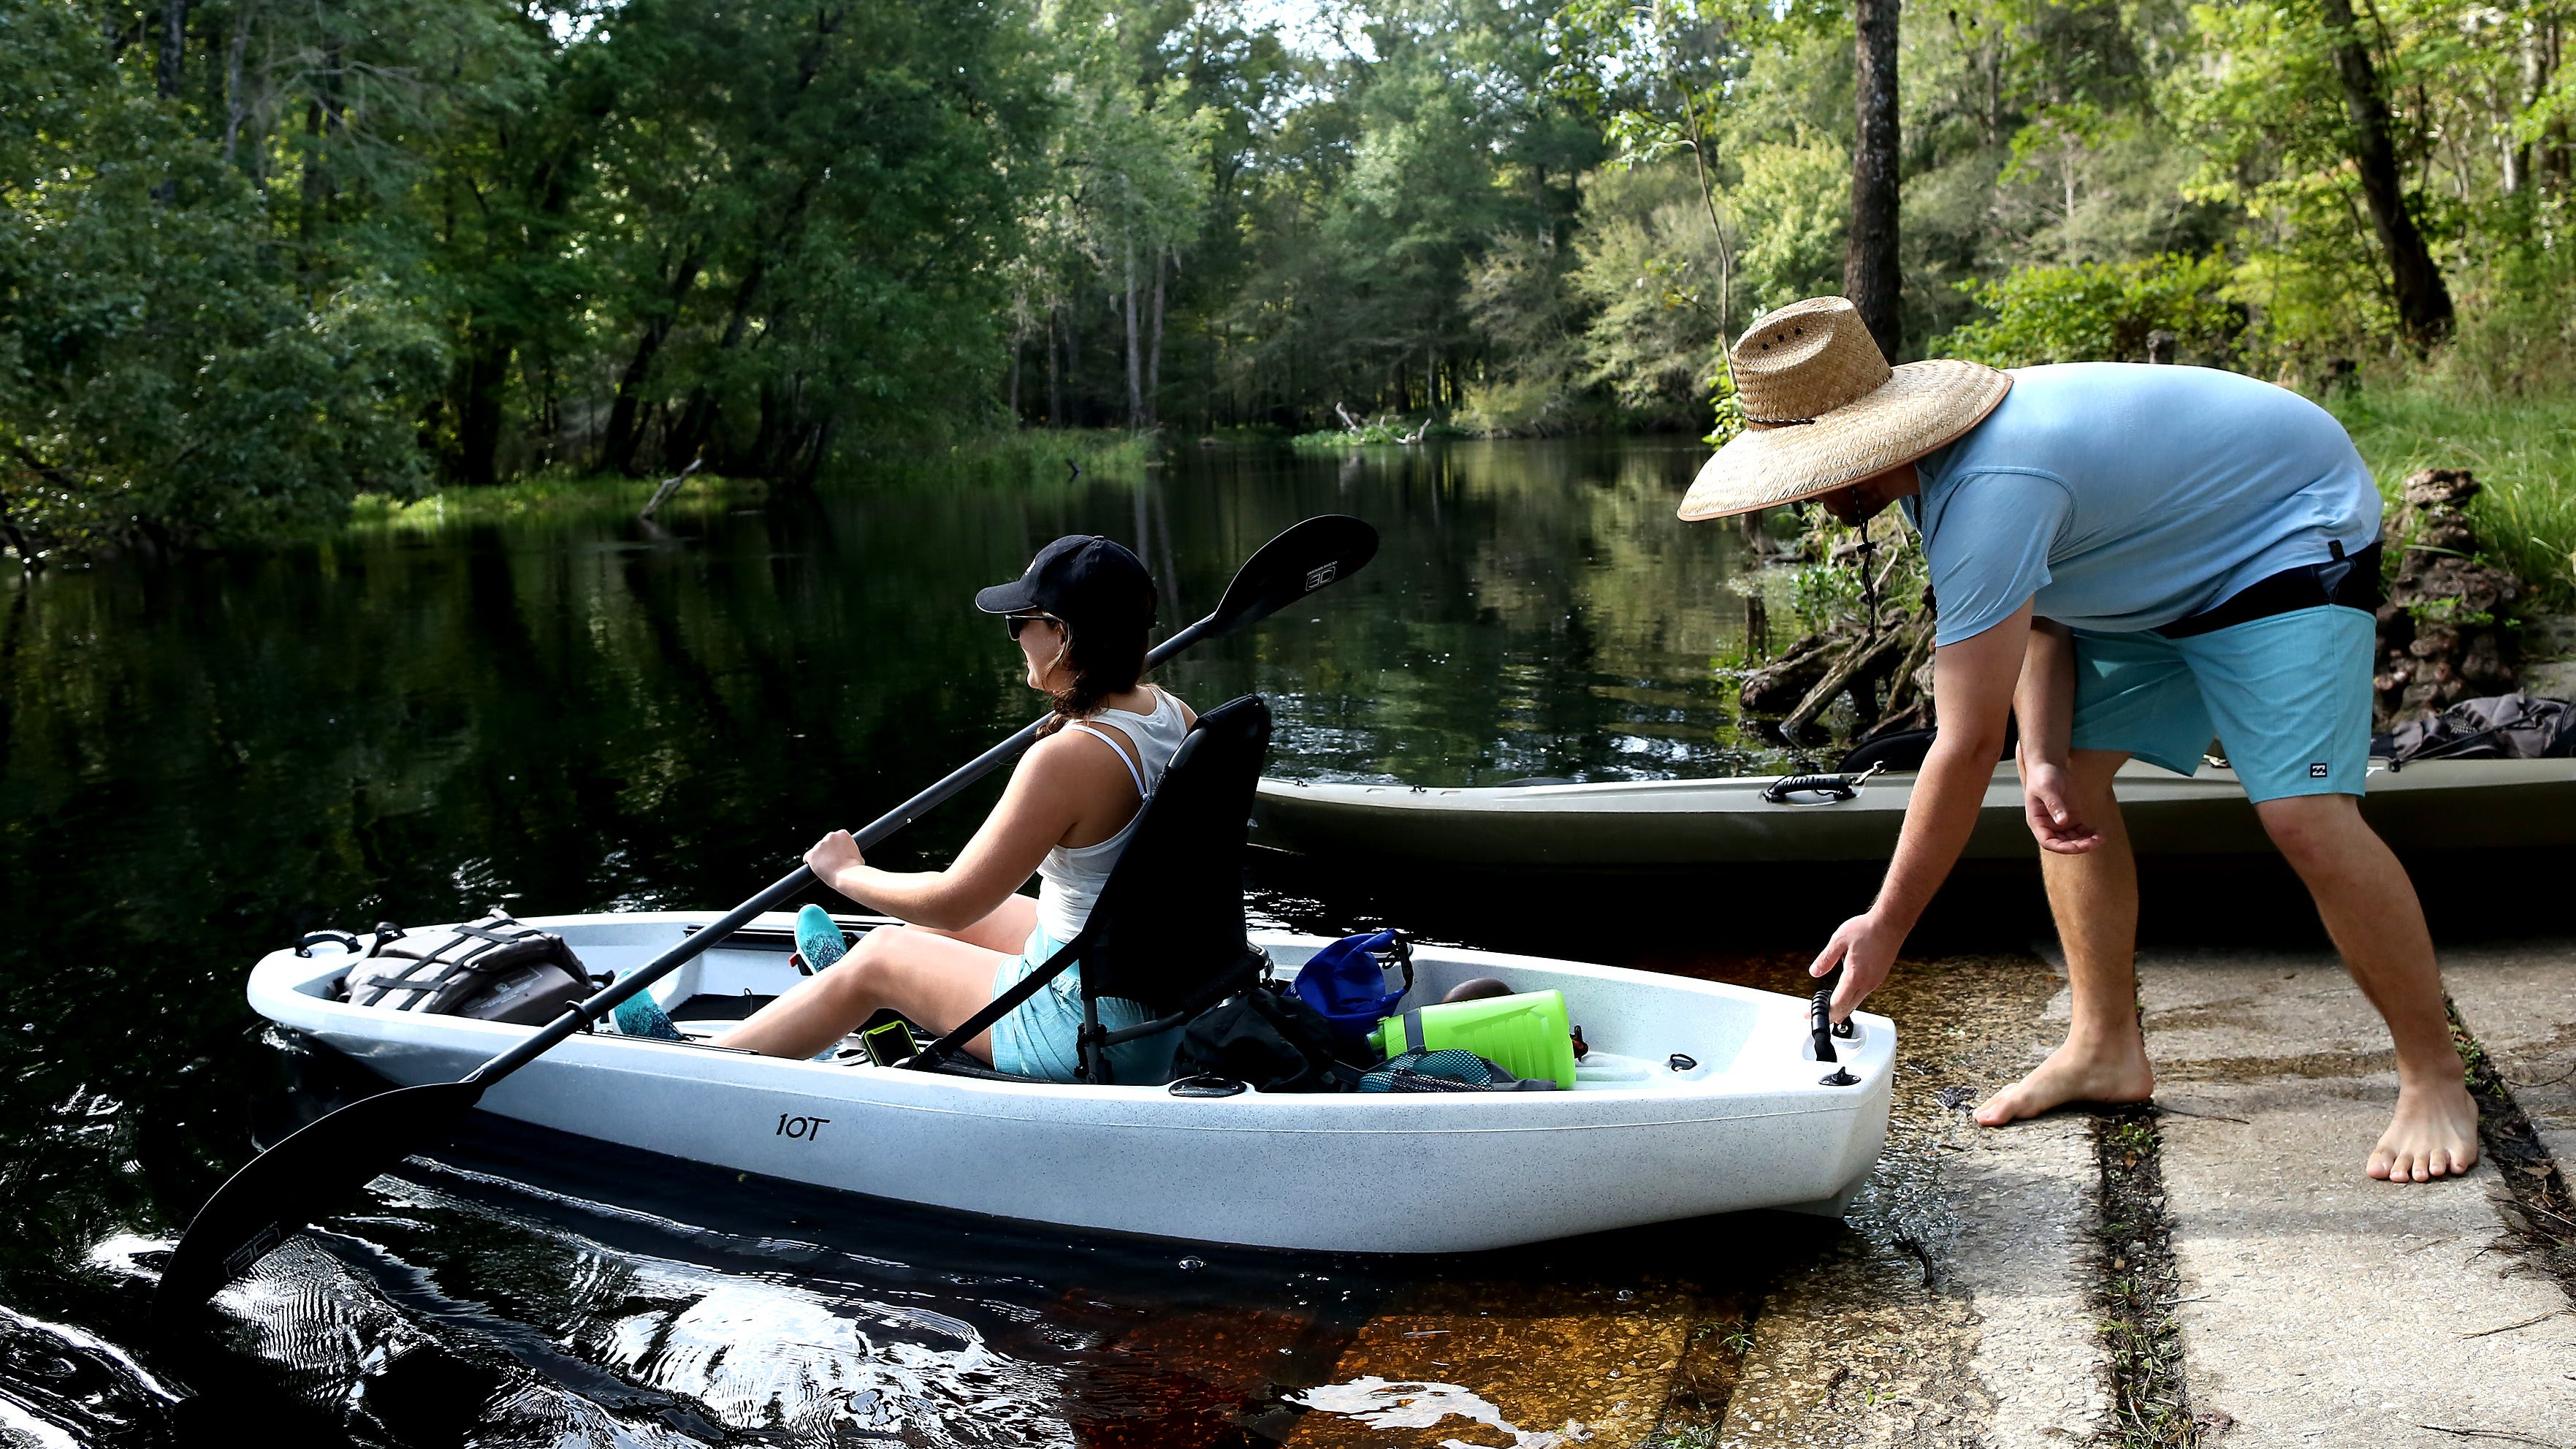 Rum Island Spring and Park reopened Monday with a few new additions, including a repaired boat launch for kayaks and canoes on the Santa Fe River.  [Brad McClenny/The Gainesville Sun]